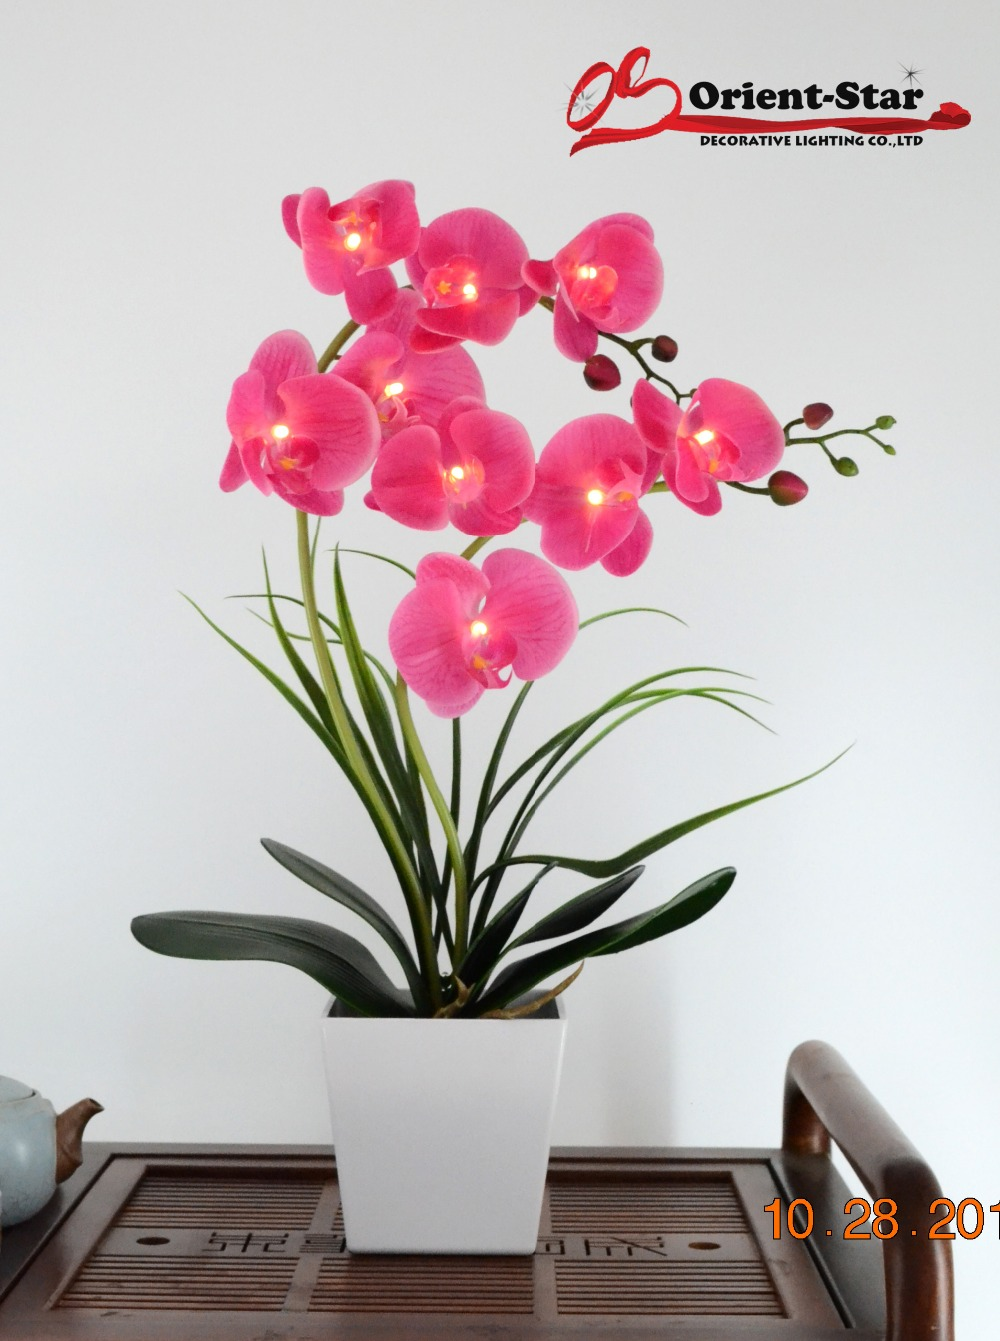 Free Shipping 20( 50cm) LED Blossom Real Touch Orchid Flower Light 9 PCs Warm White LED /Lighted Flowers with 2*AA Battery potFree Shipping 20( 50cm) LED Blossom Real Touch Orchid Flower Light 9 PCs Warm White LED /Lighted Flowers with 2*AA Battery pot